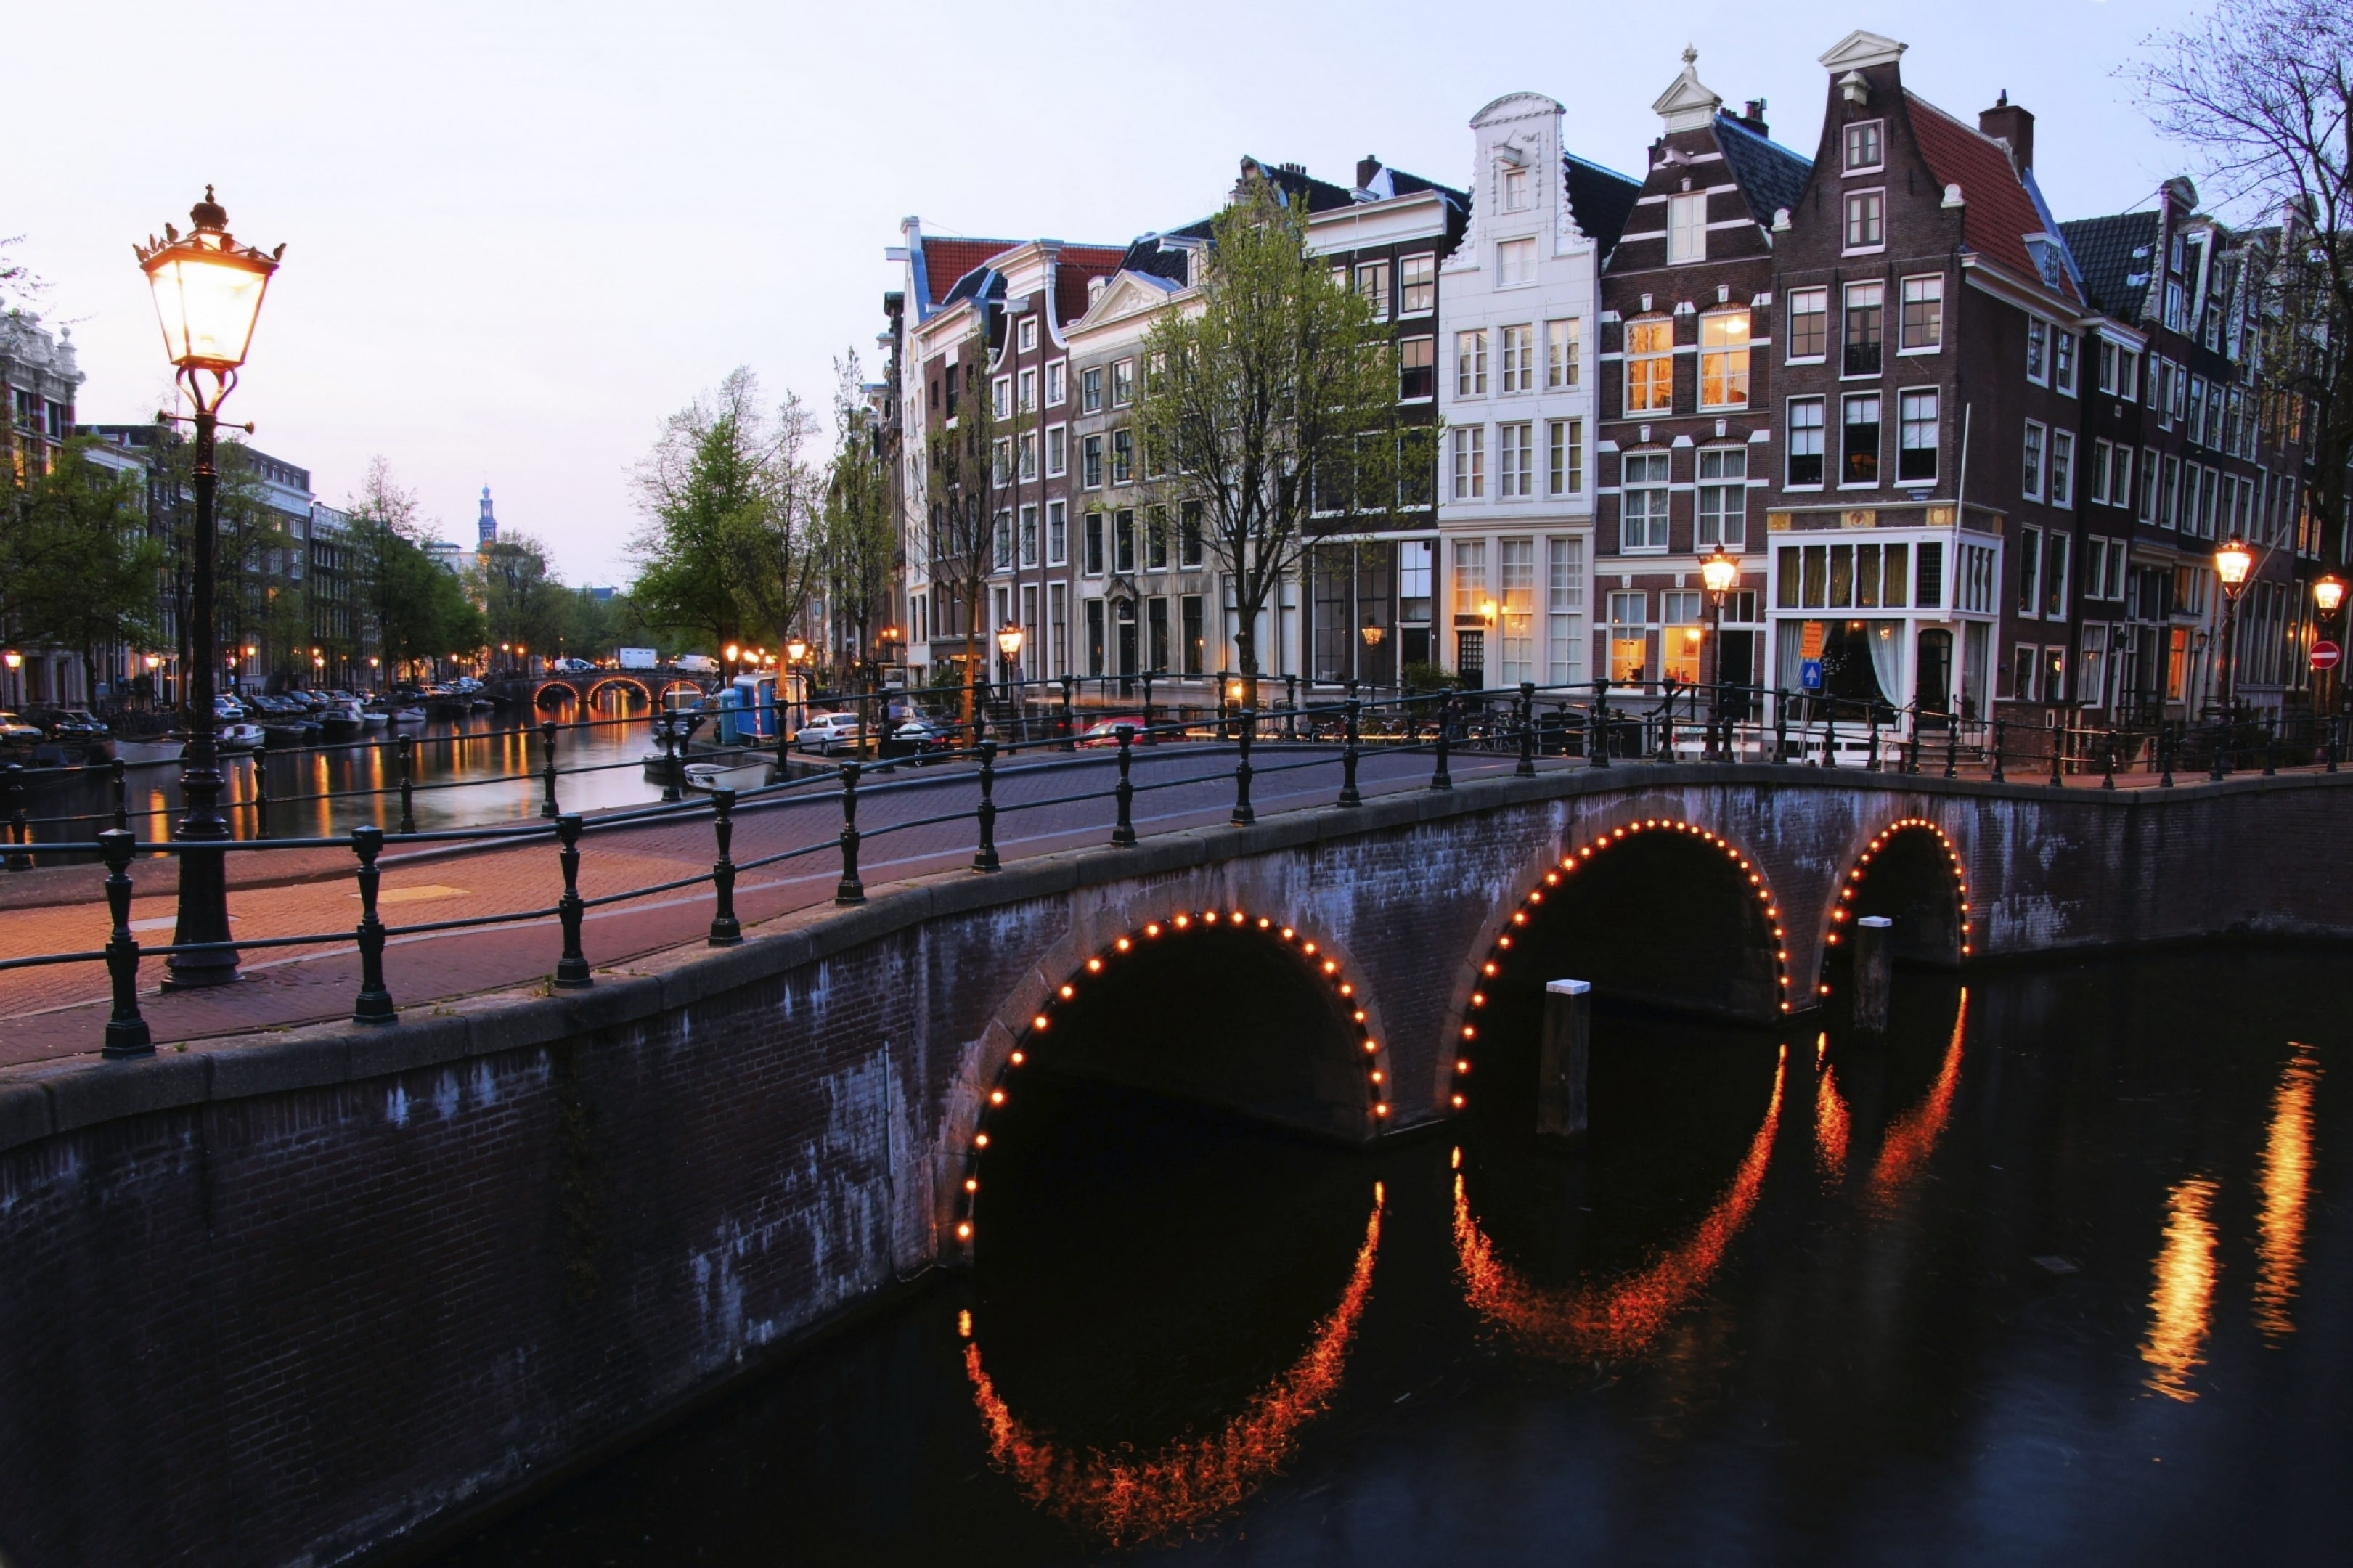 A picture of a street with a bridge and canal in Amsterda, where Guerrilla Games is based